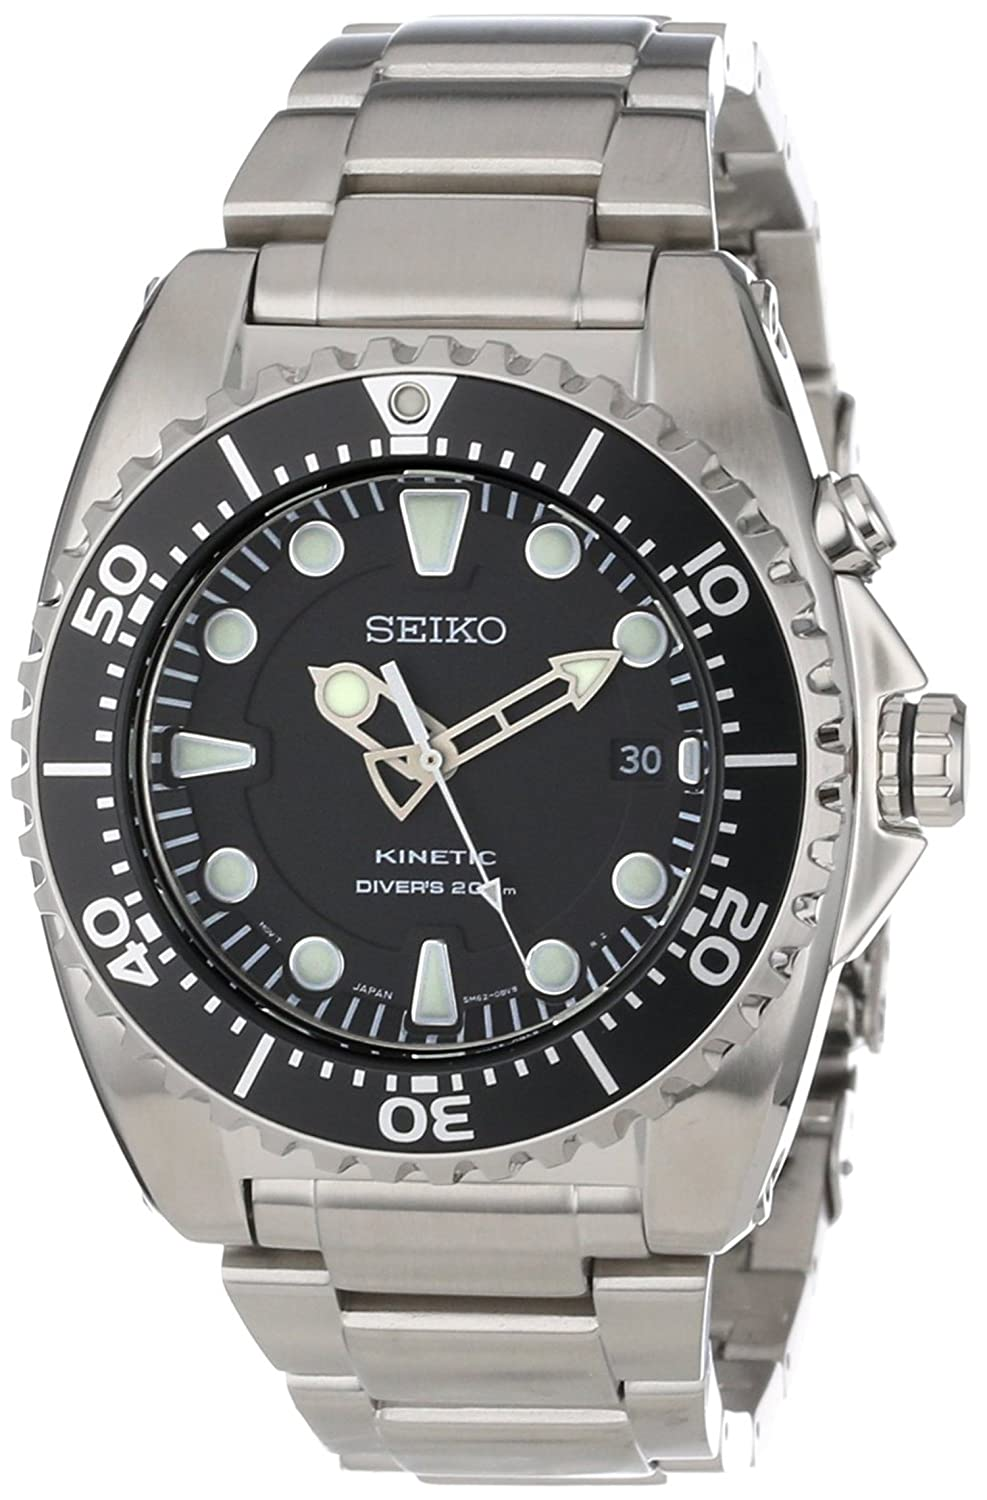 sports watches shop amazon uk seiko prospex kinetic 200 meter dive men s automatic analogue watch black dial and stainless steel case